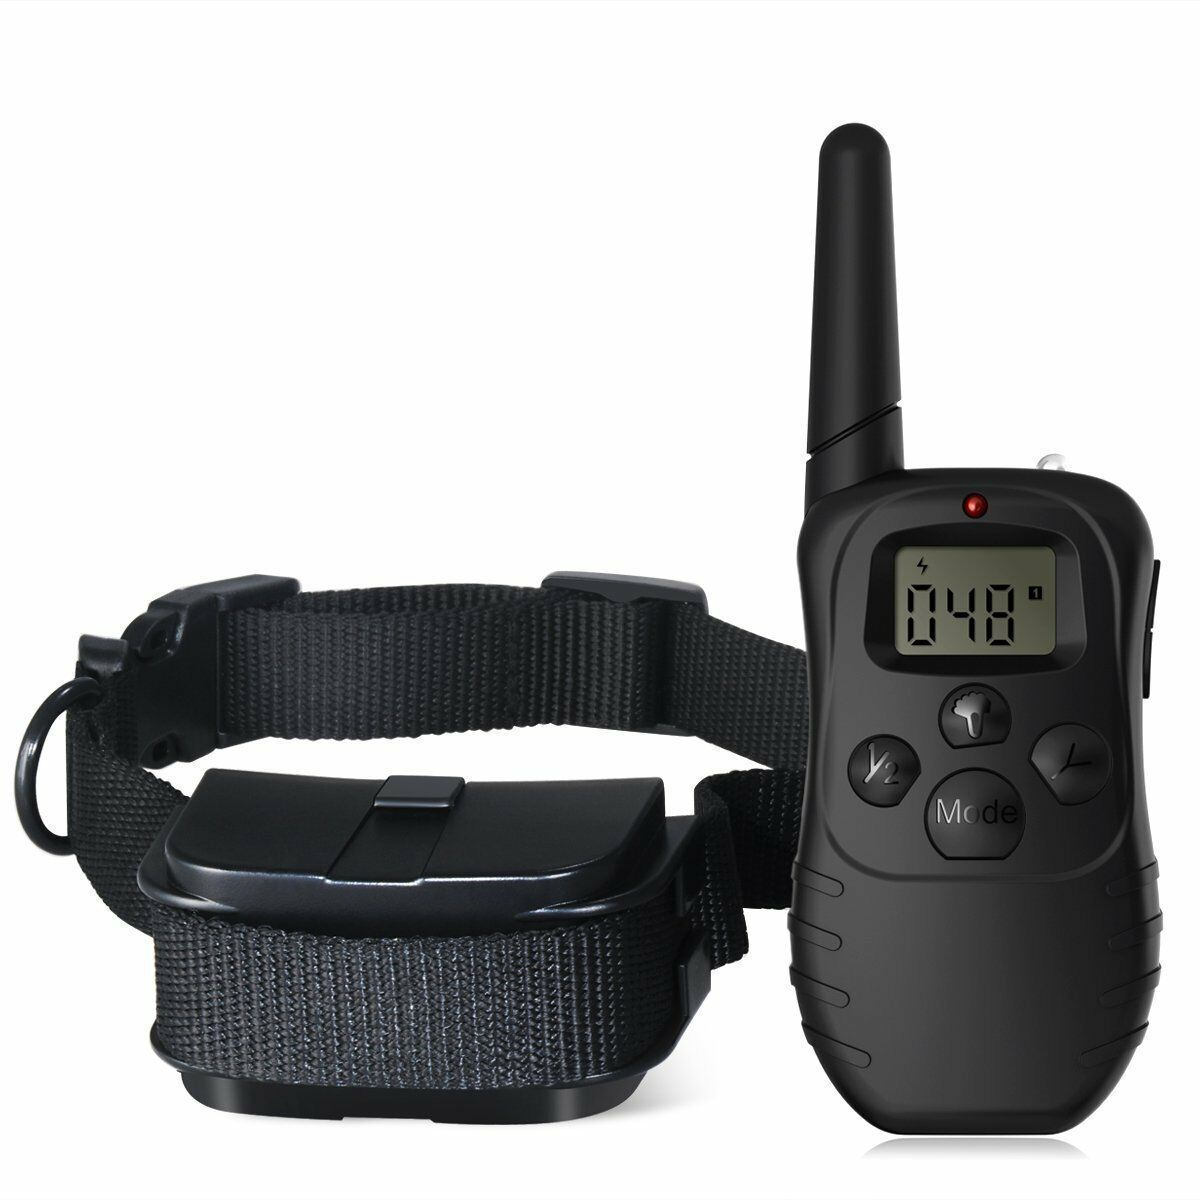 Remote LCD 100LV 300M Electric Shock Vibrate Pet Dog Training Collar Waterproof